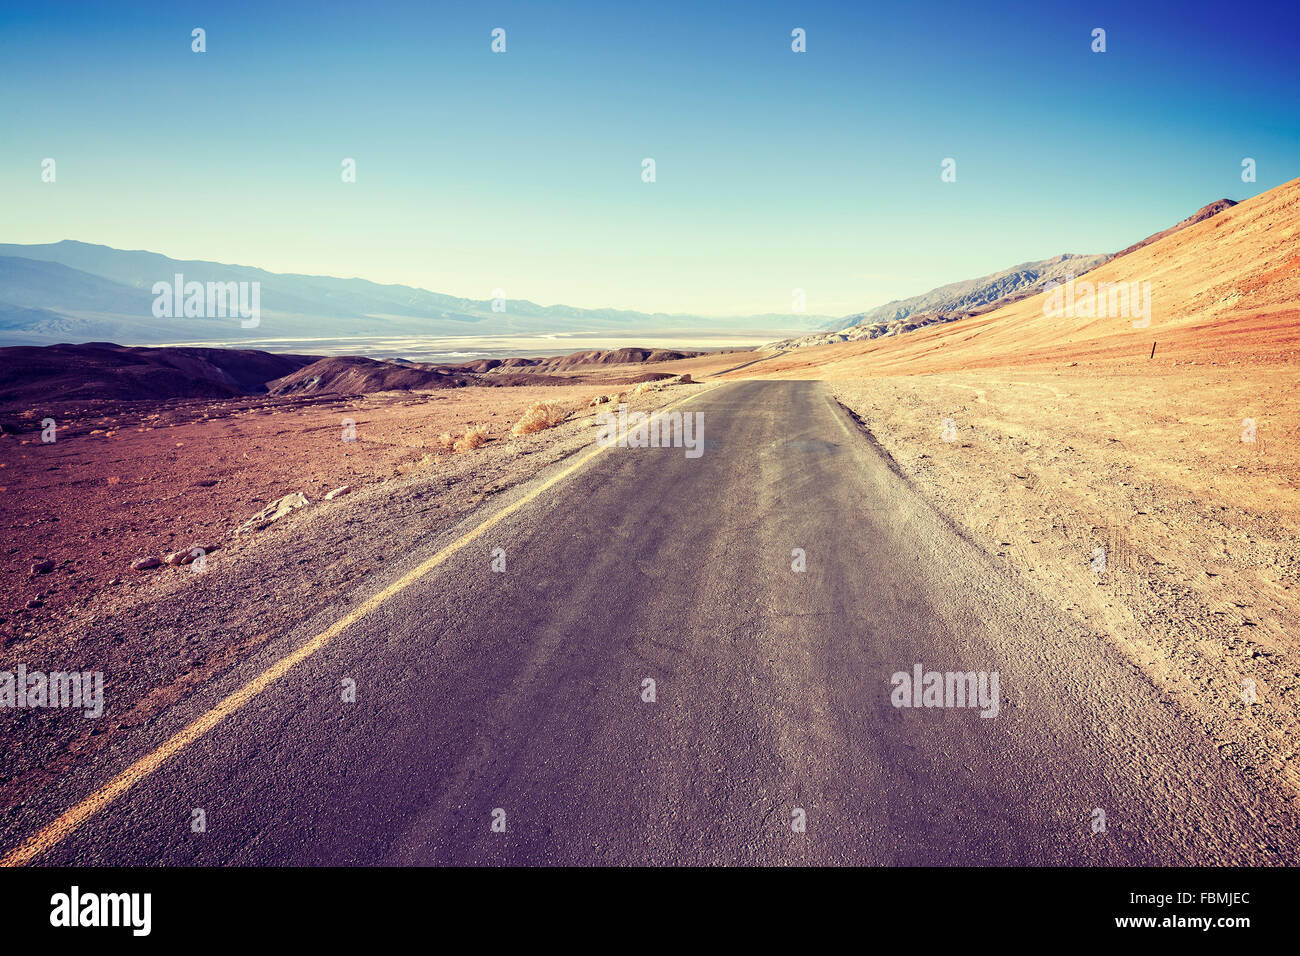 Vintage filtered empty desert road. Stock Photo